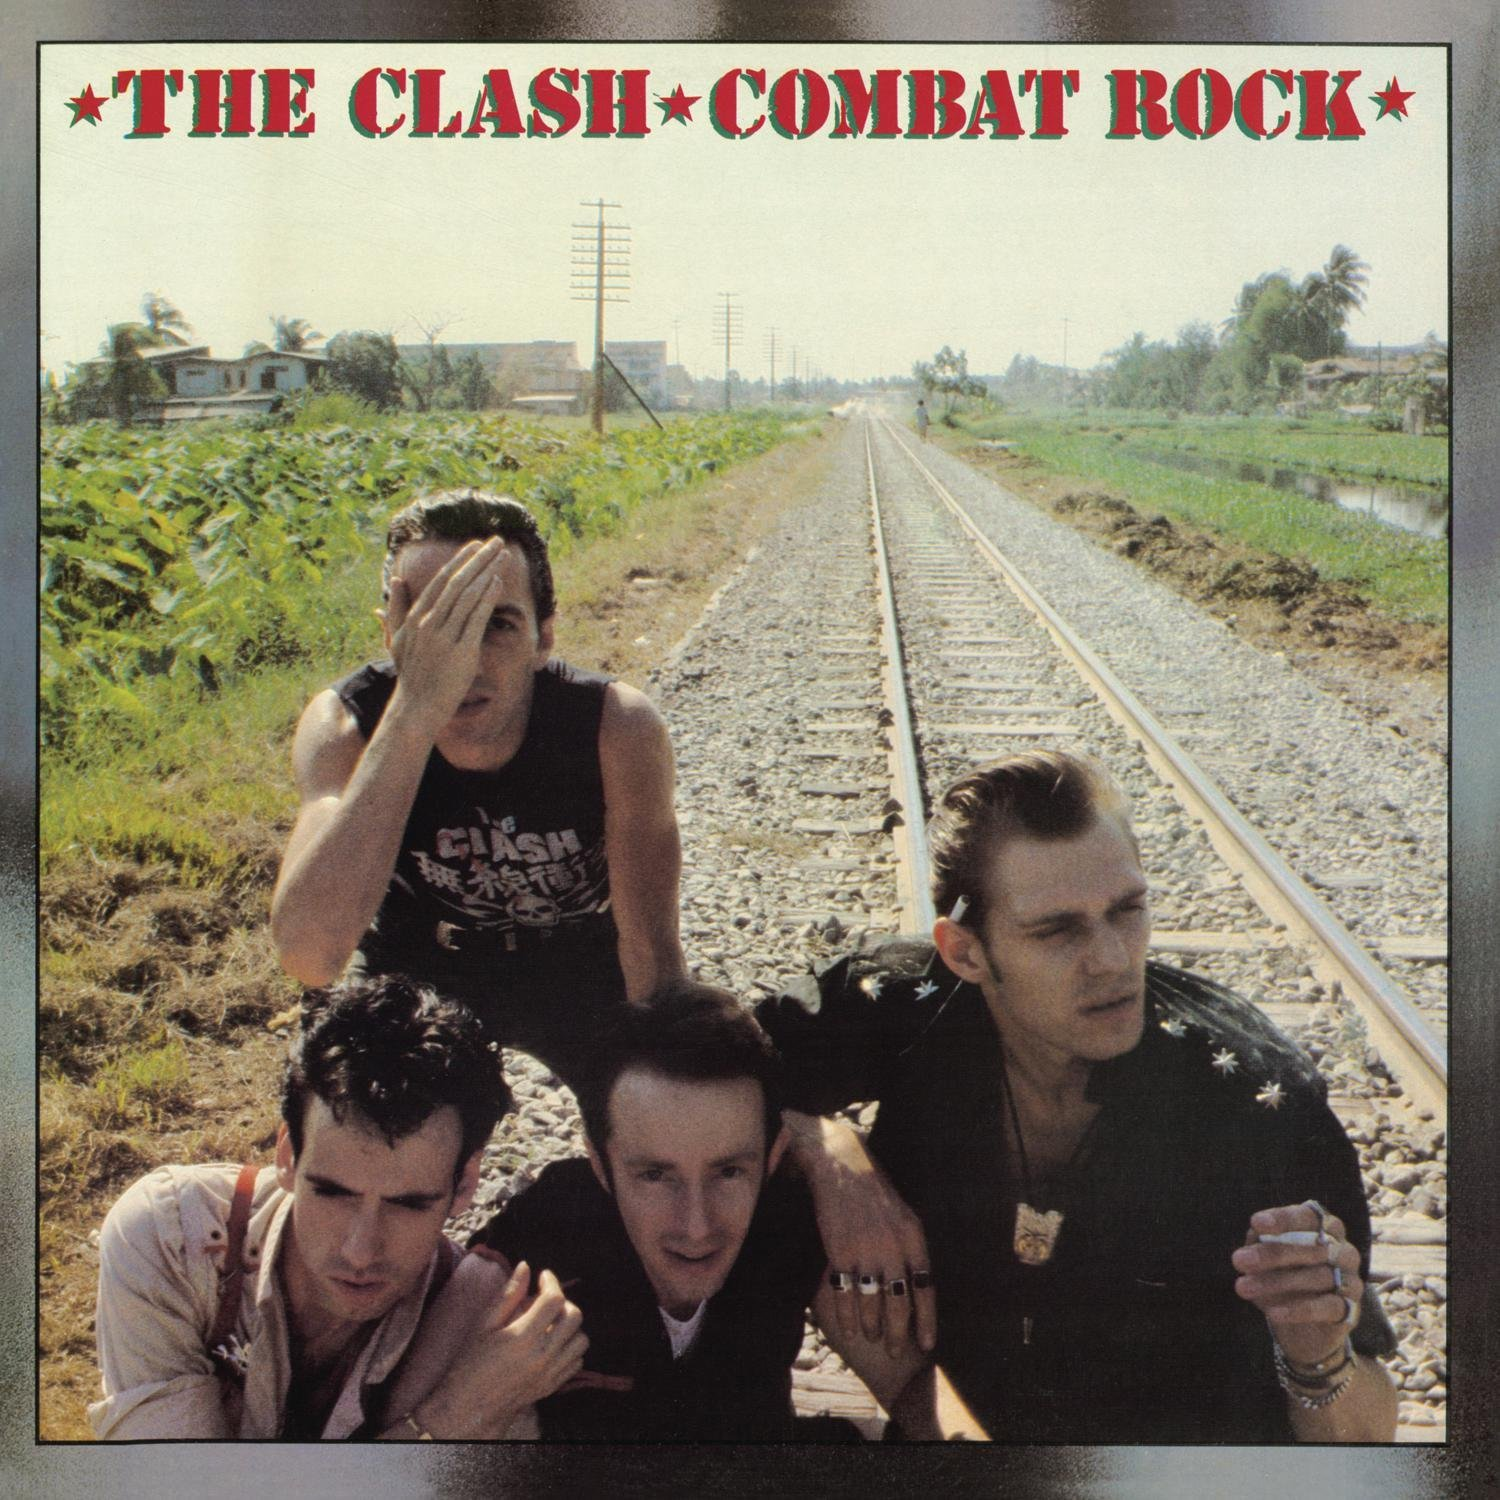 combat rock Ranking: Every Album by The Clash from Worst to Best